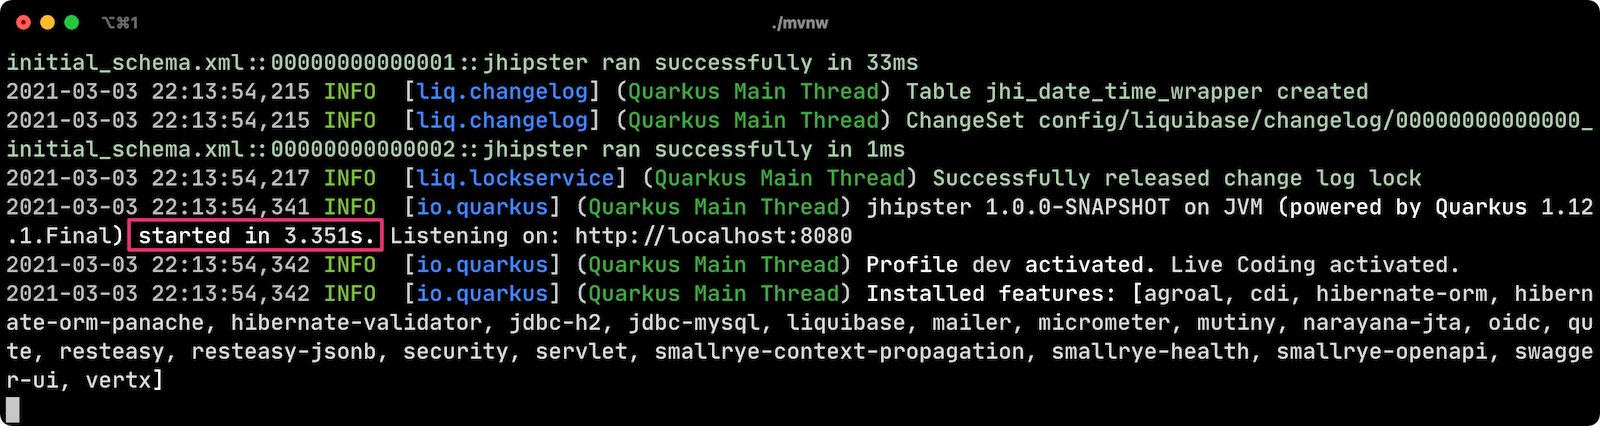 JHipster Quarkus with Keycloak